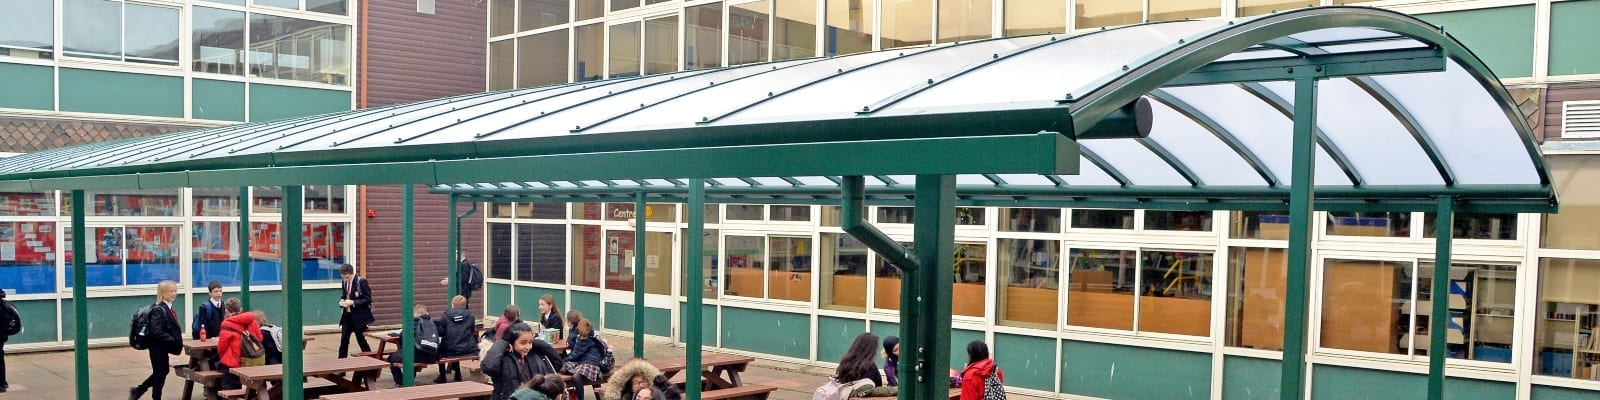 Rushcliffe School Green Curved Roof Shelter